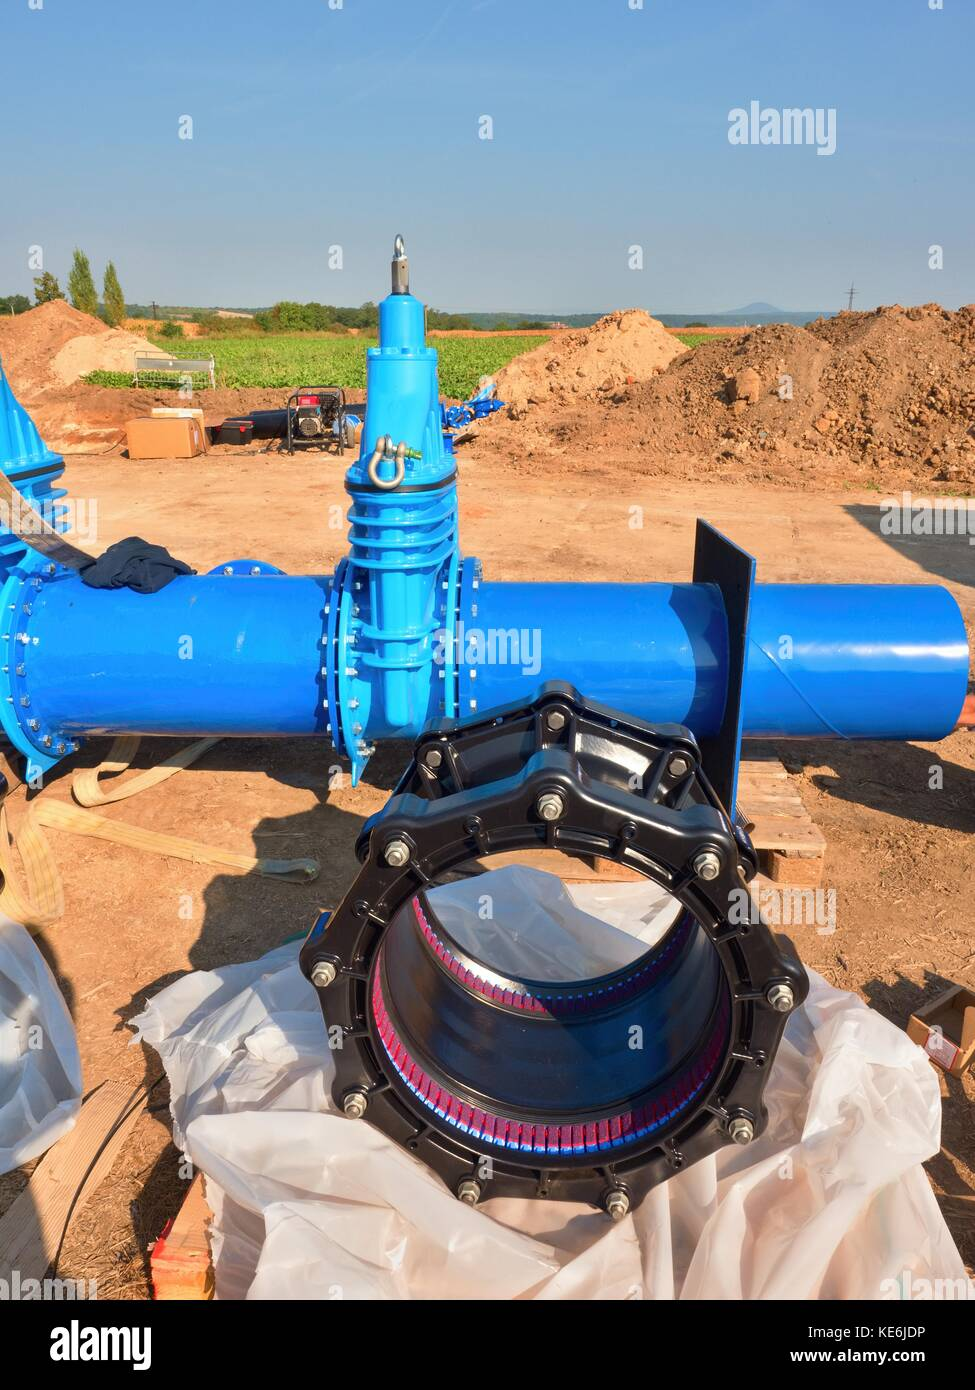 500mm new black waga multi joint unit. 500 mm drink water Gate valve joint with screws and nuts to pipe fitting. - Stock Image